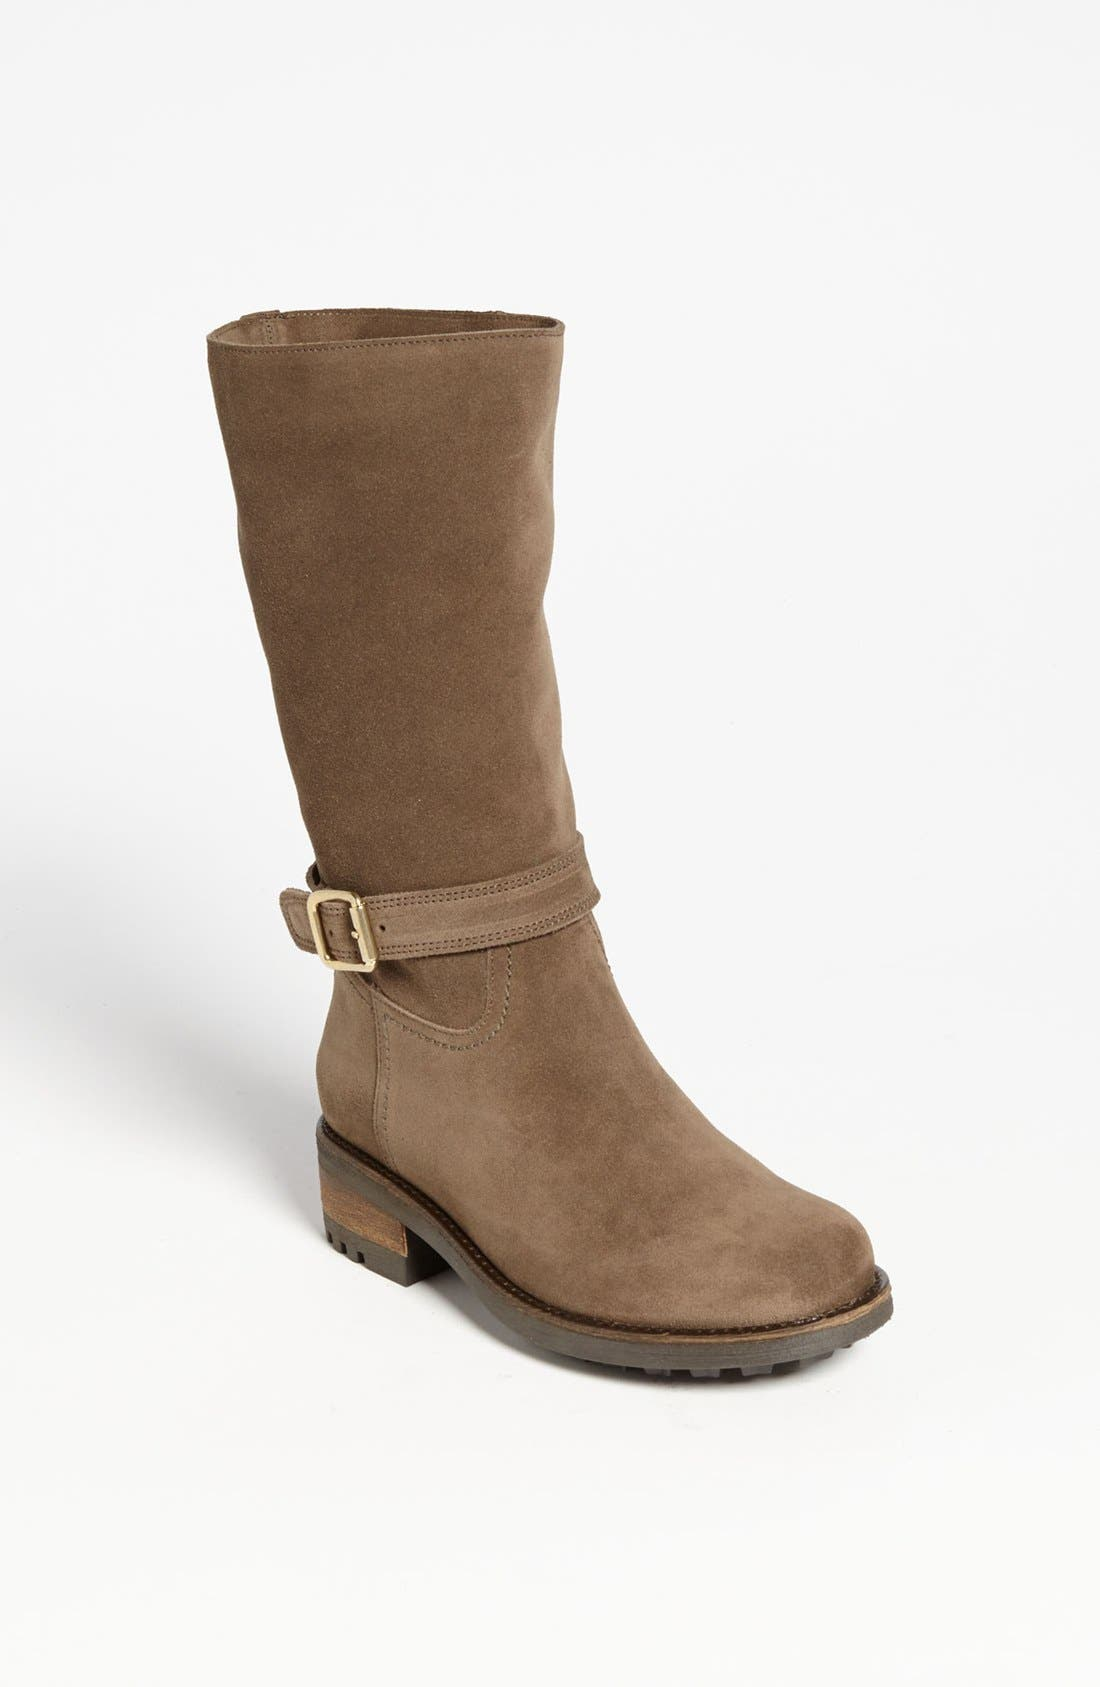 Alternate Image 1 Selected - La Canadienne 'Chance' Waterproof Boot